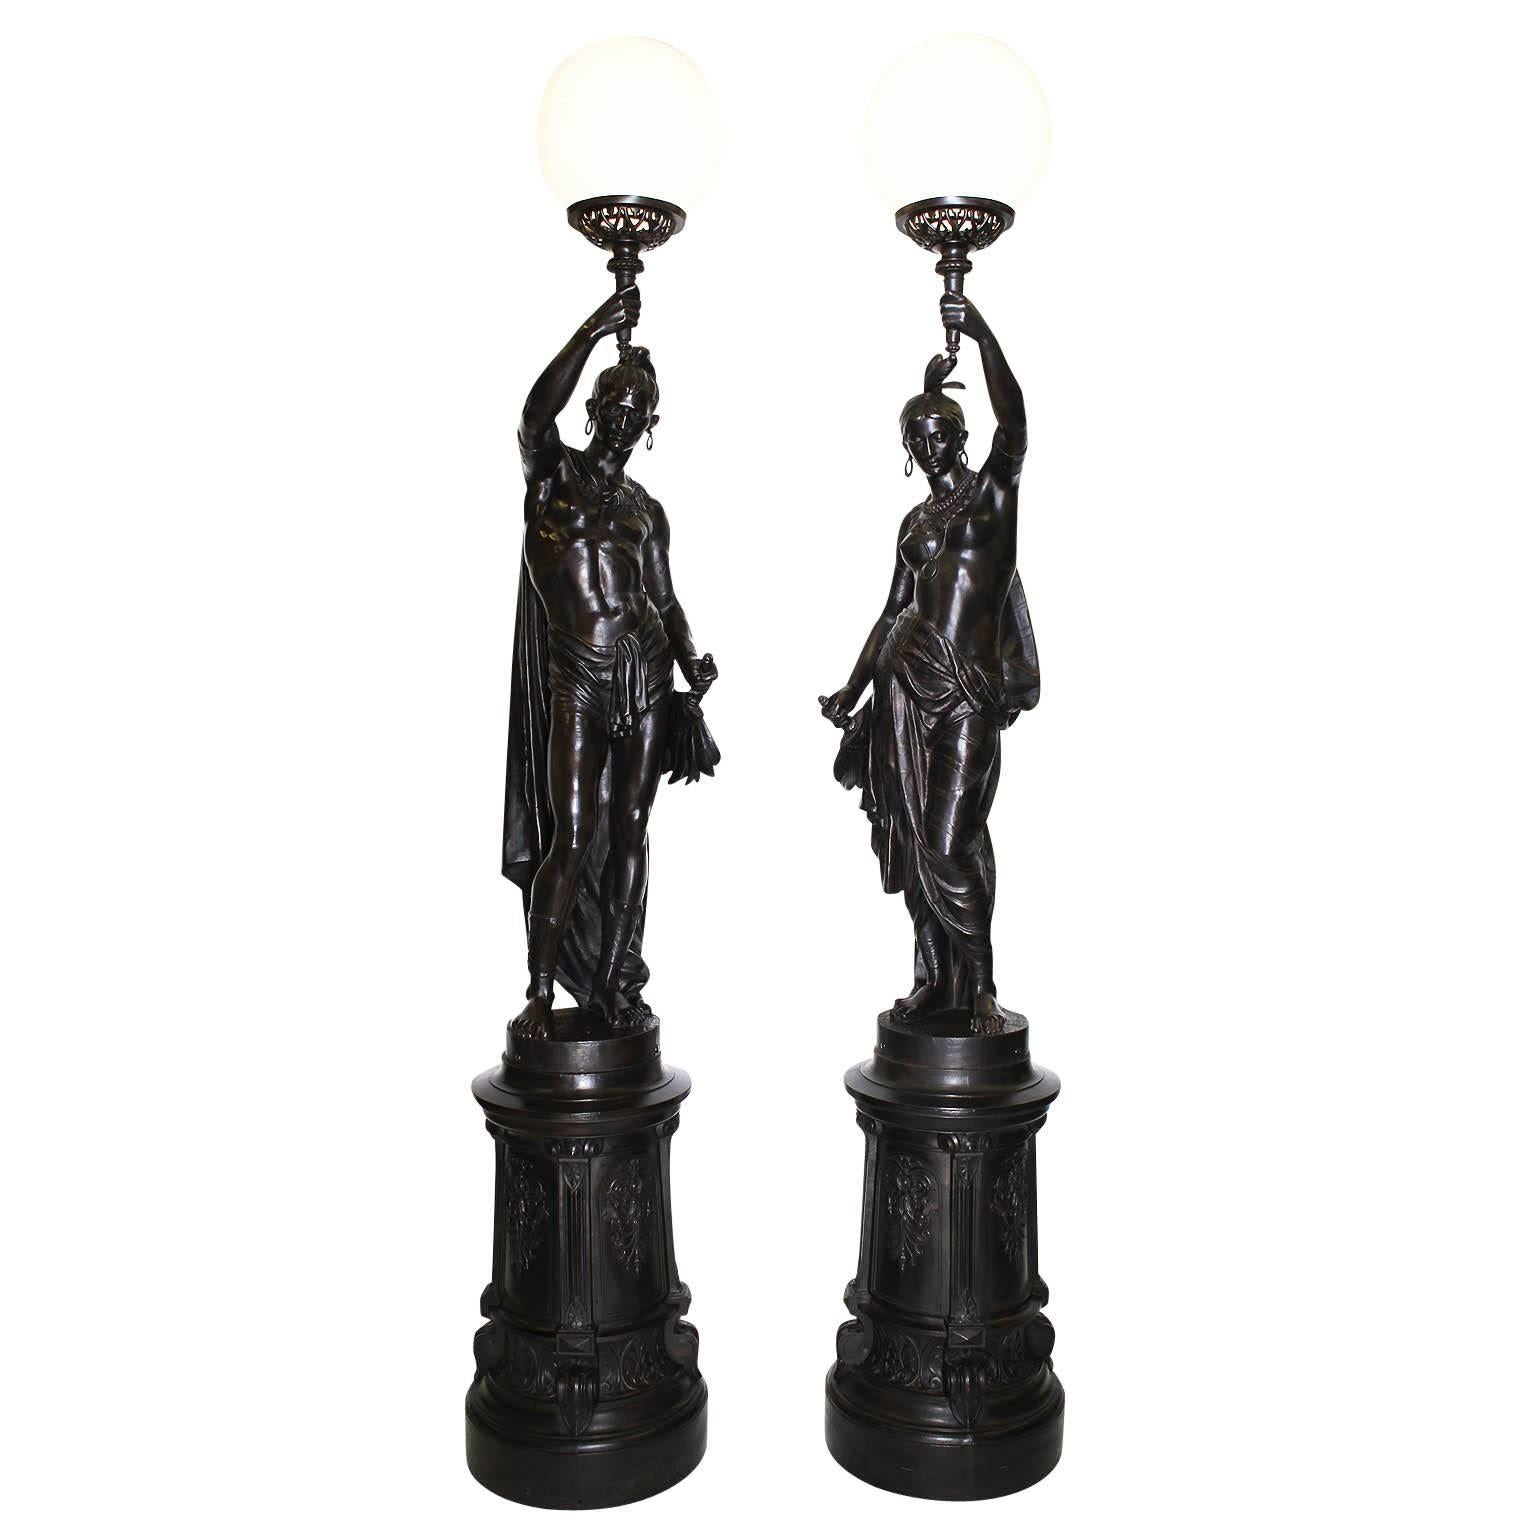 Pair of French 19th Century Lifesize Cast-Iron Sculpture Torcheres, Val d'Osne